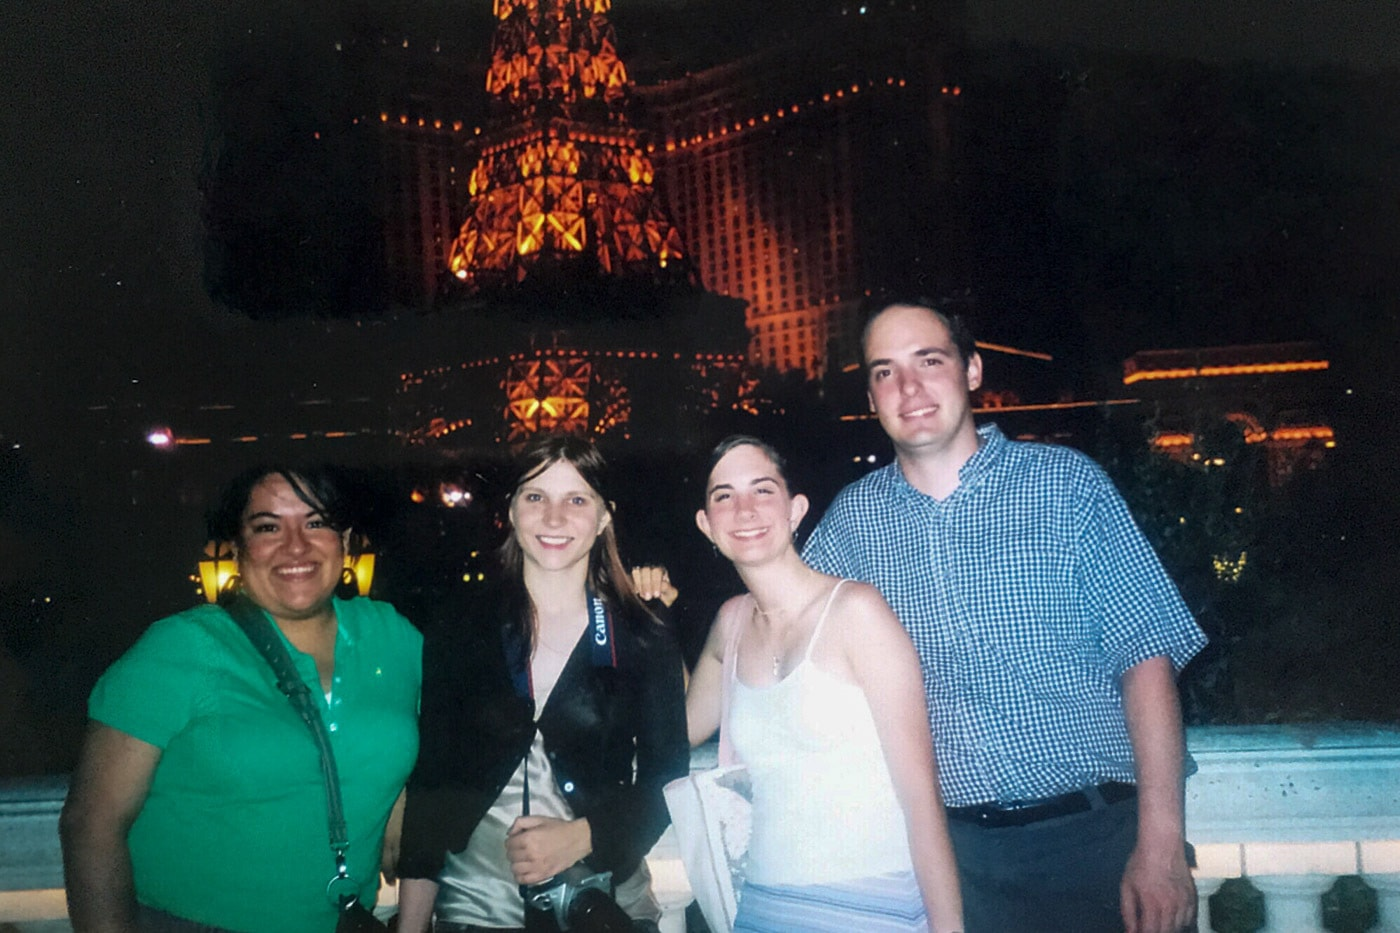 Las Vegas was fun but not that exciting to write about.